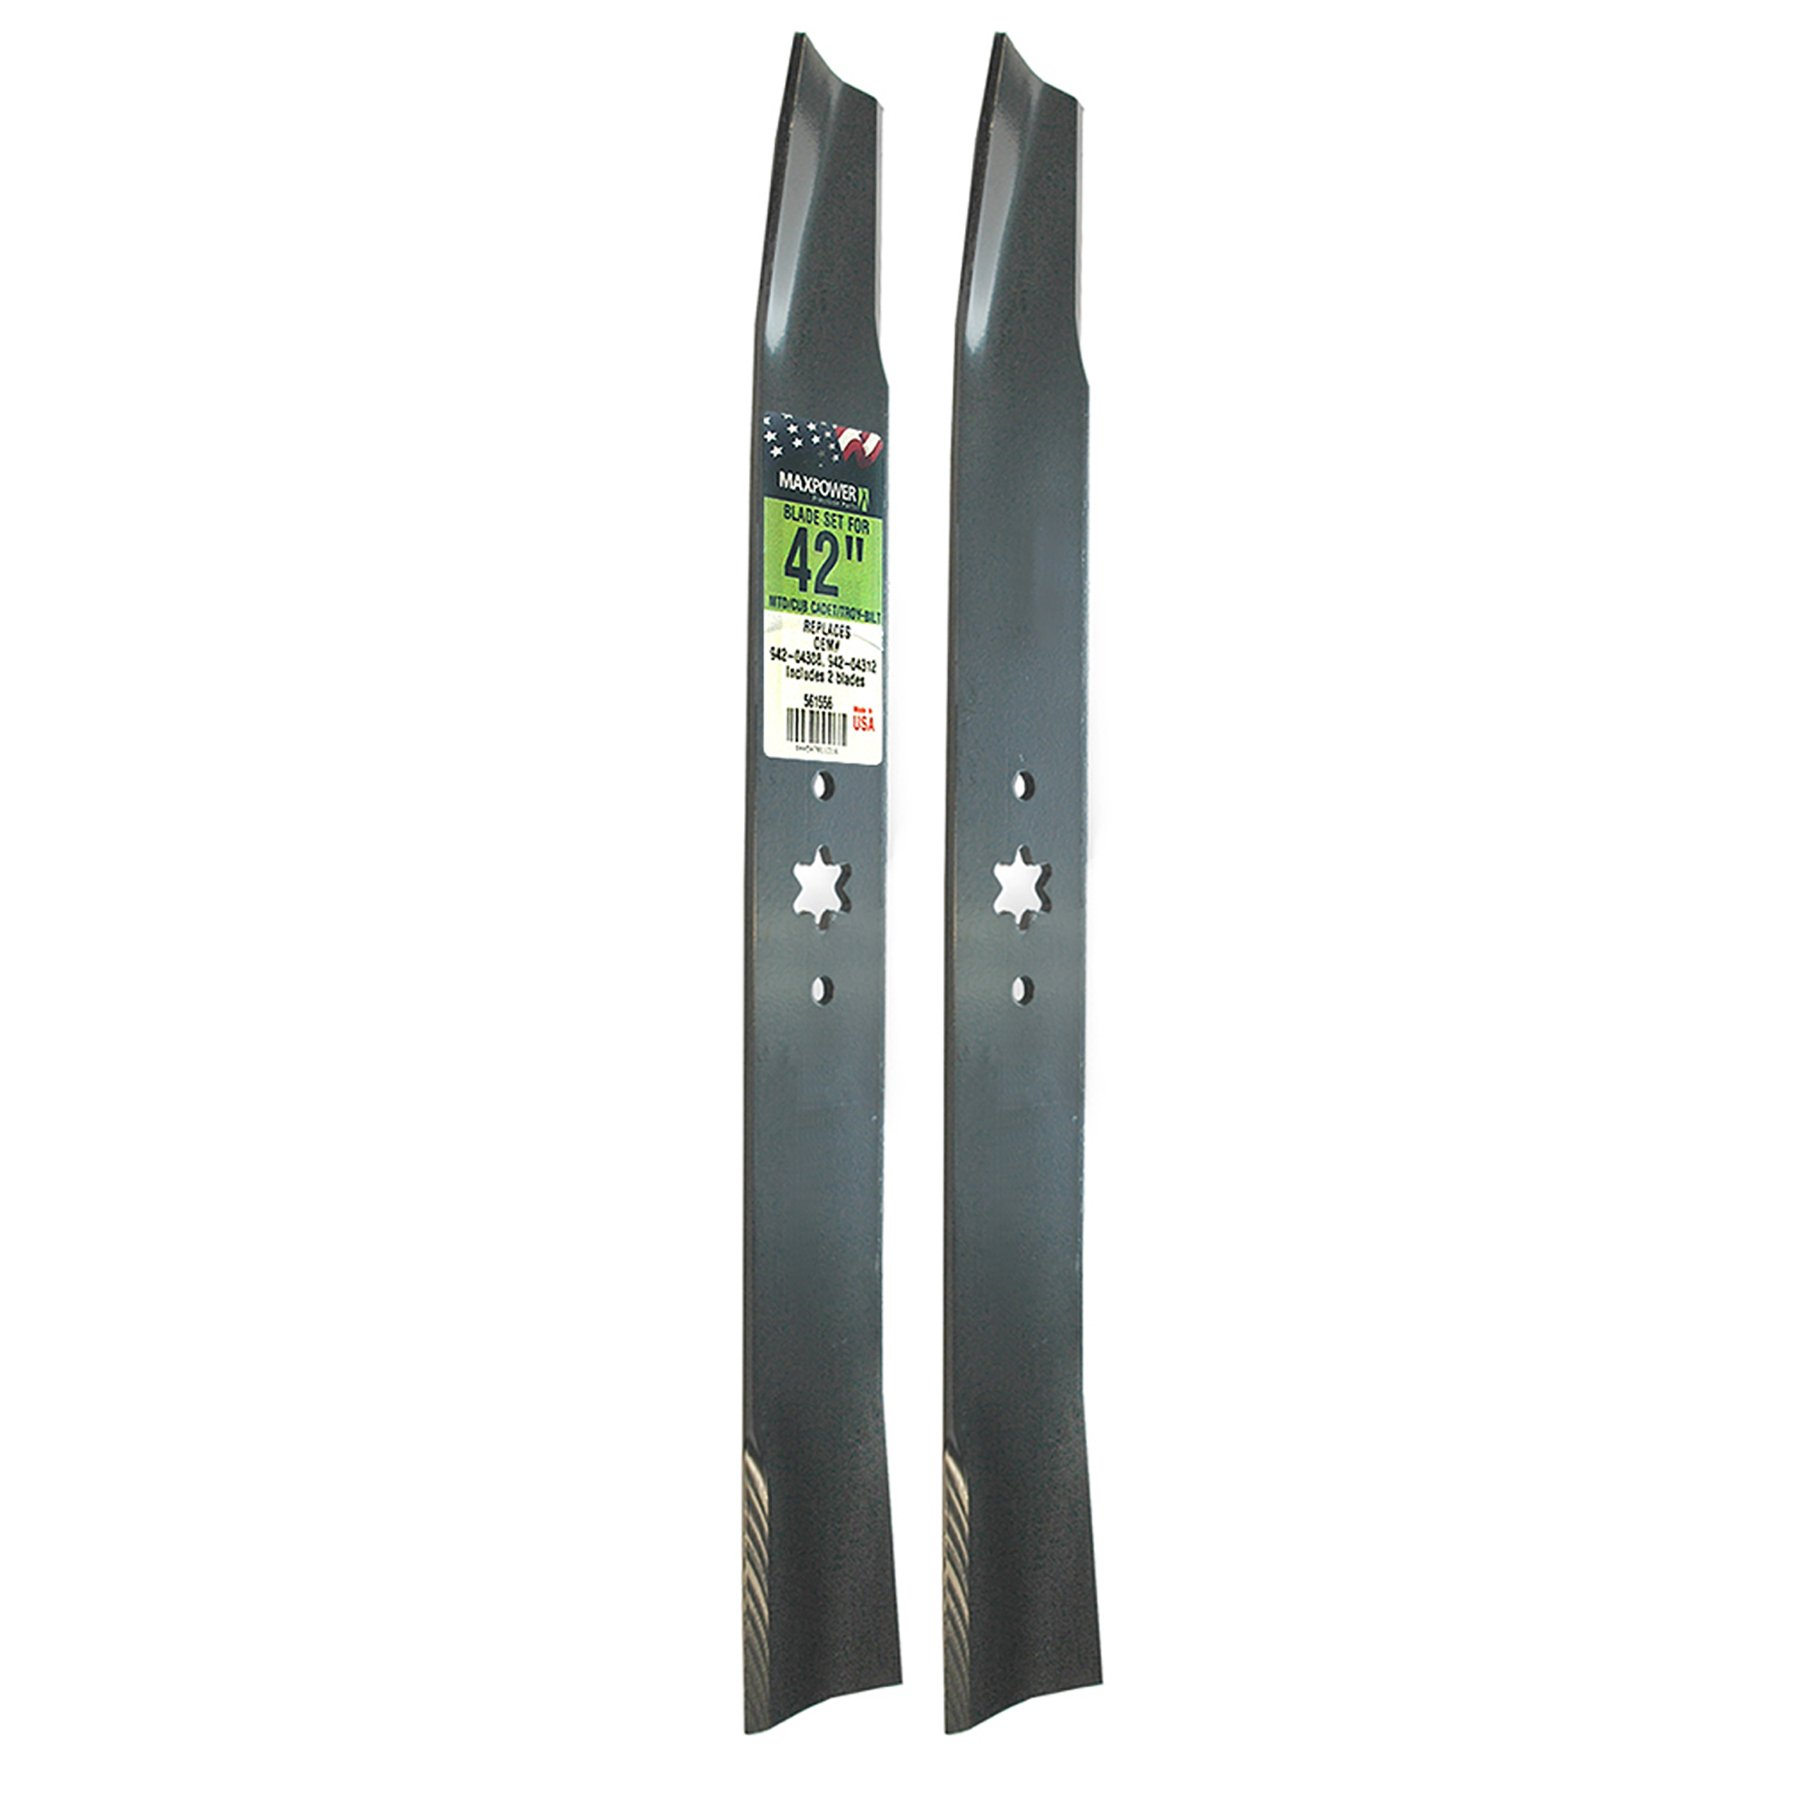 Maxpower 561556 (2) Blade Set for 42'' Cut MTD, Cub Cadet, and Troy-Bilt Replaces OEM # 942-04312 and 942-04308